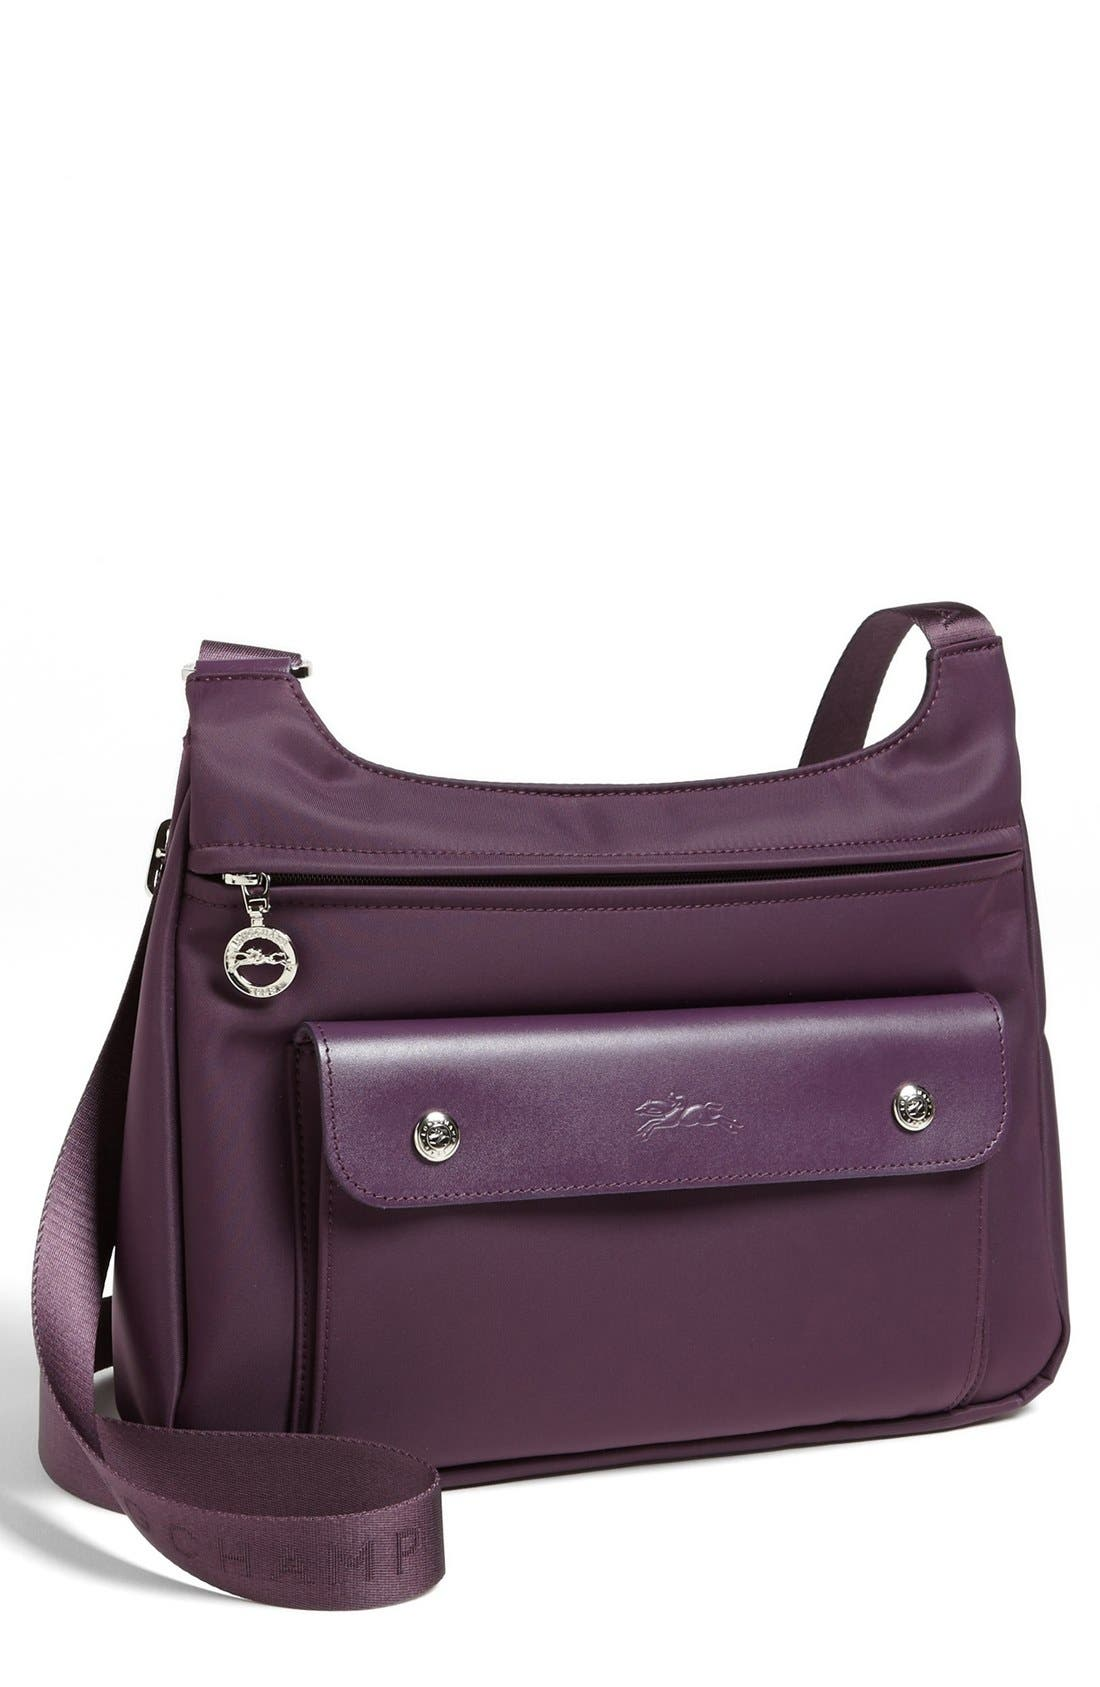 Main Image - Longchamp 'Planetes' Crossbody Bag